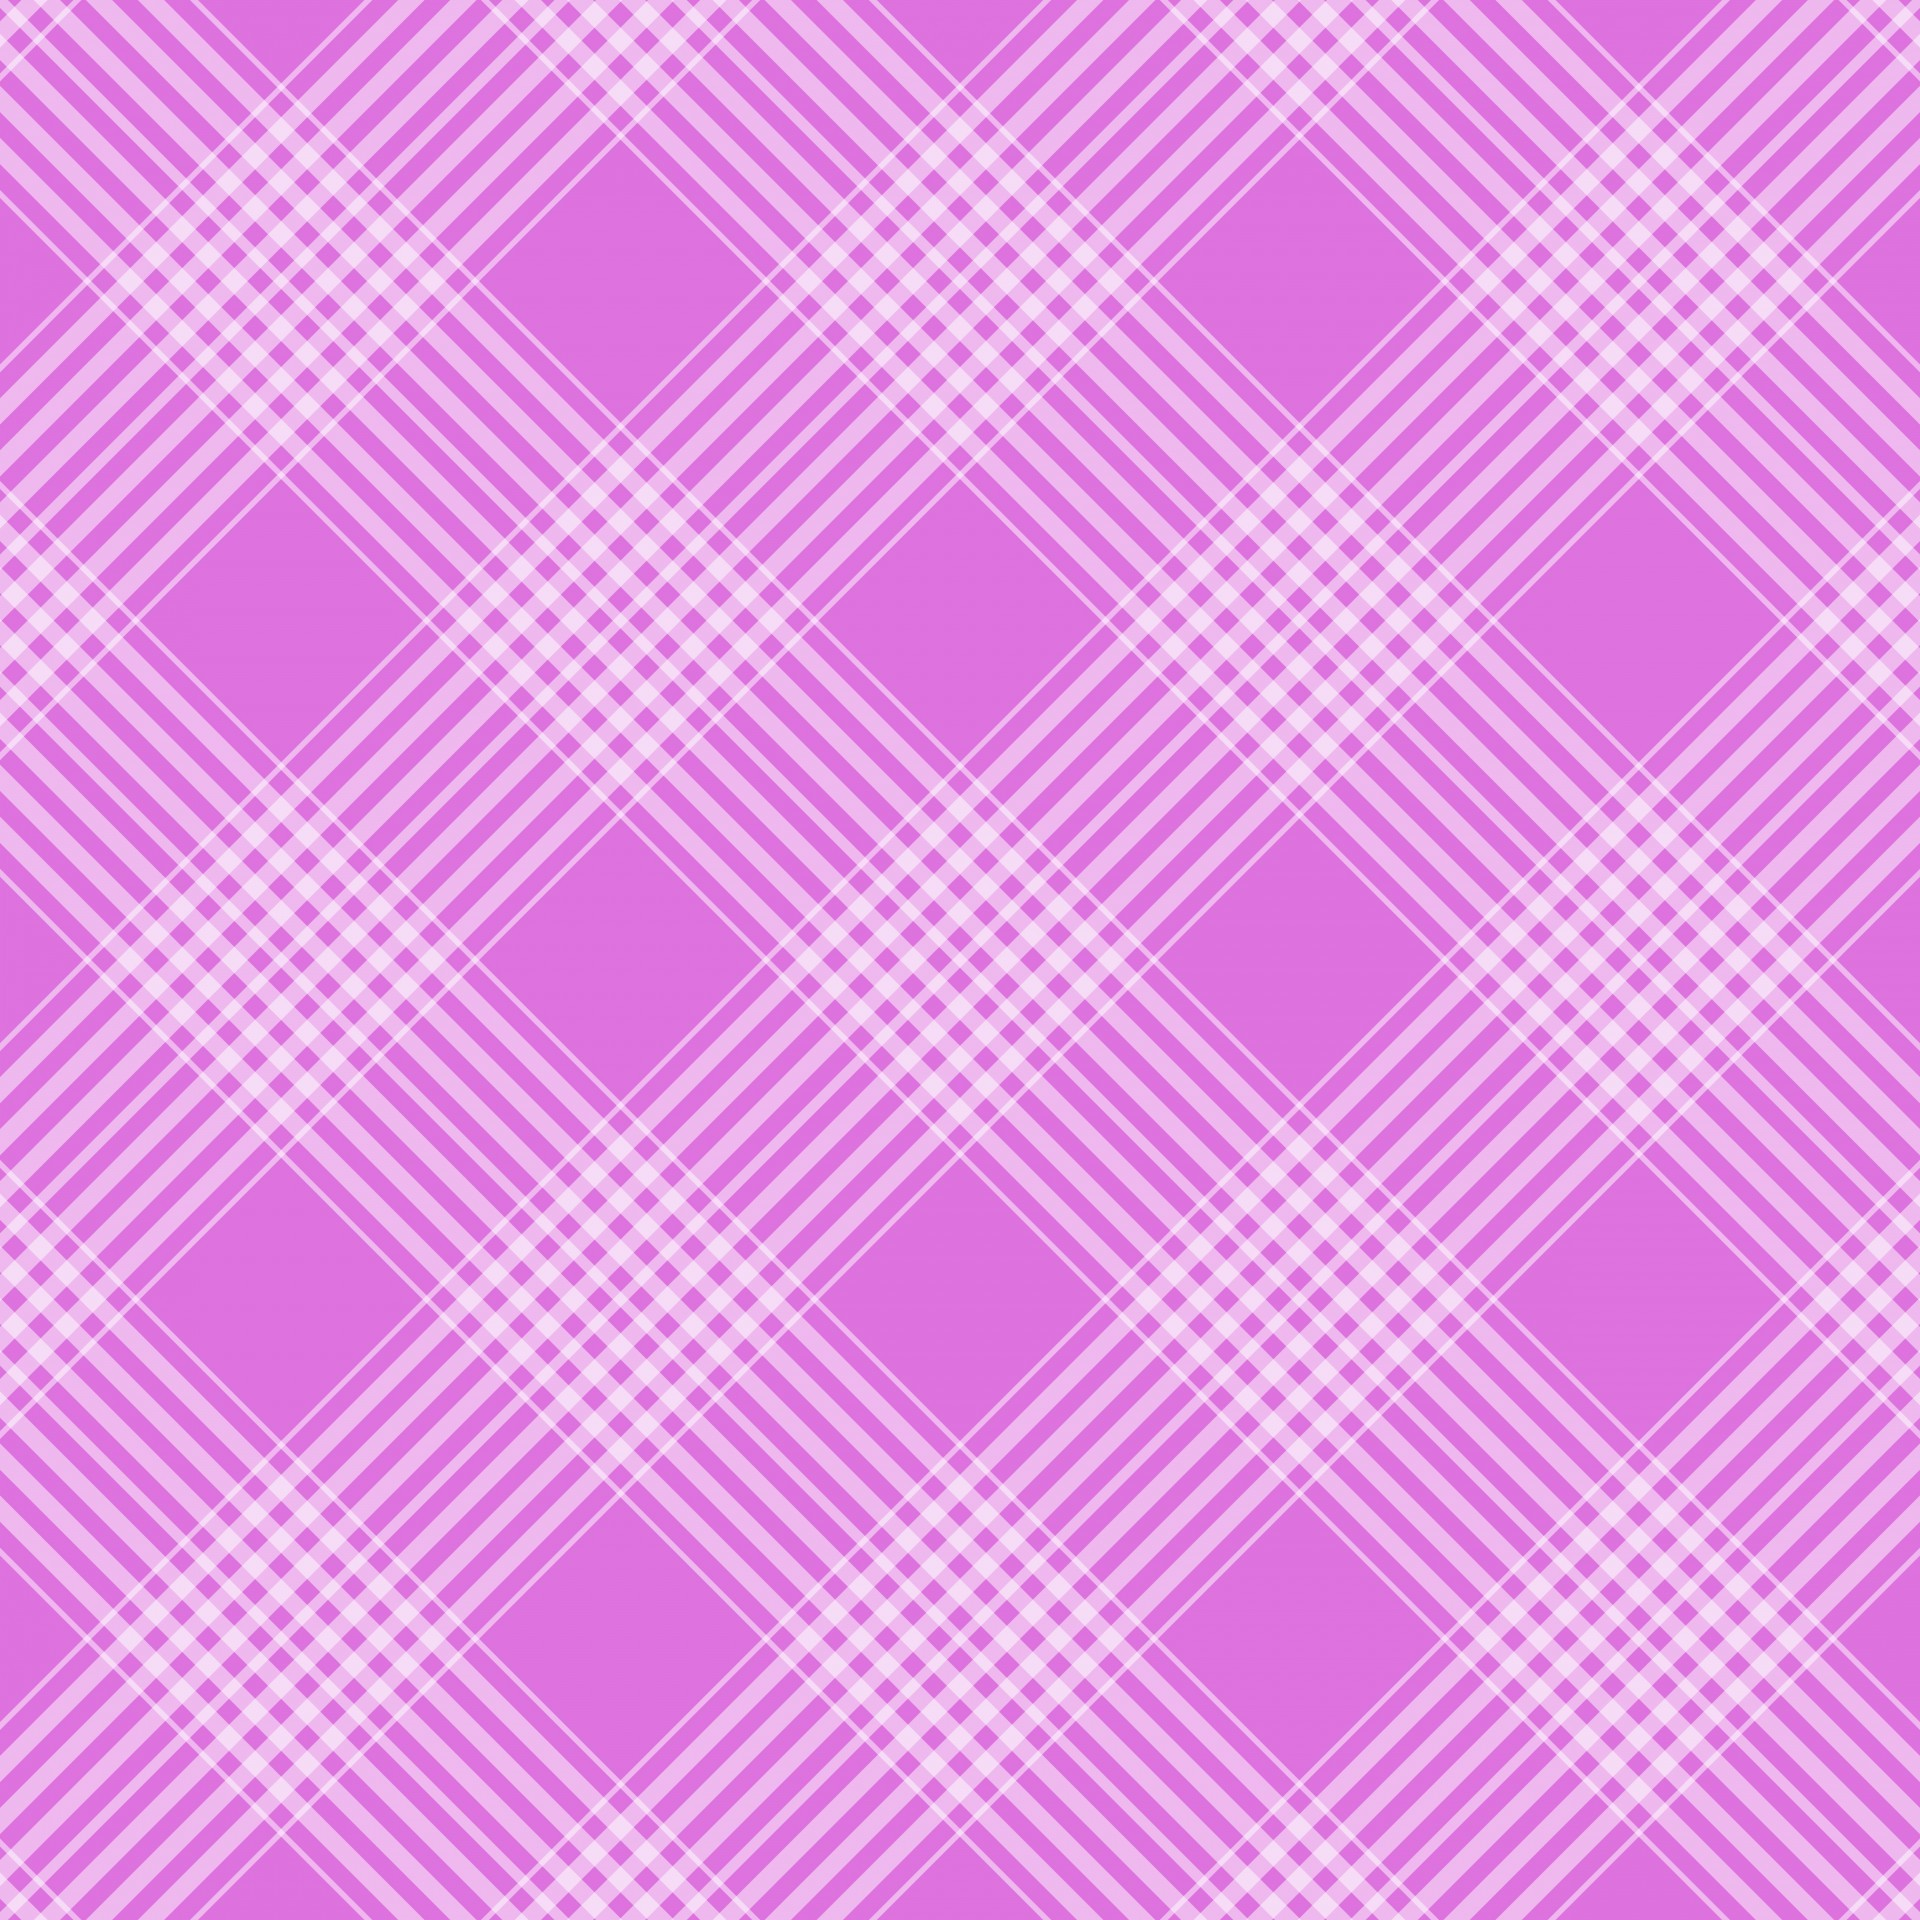 Plaid Background ·① Download Free Stunning Backgrounds For